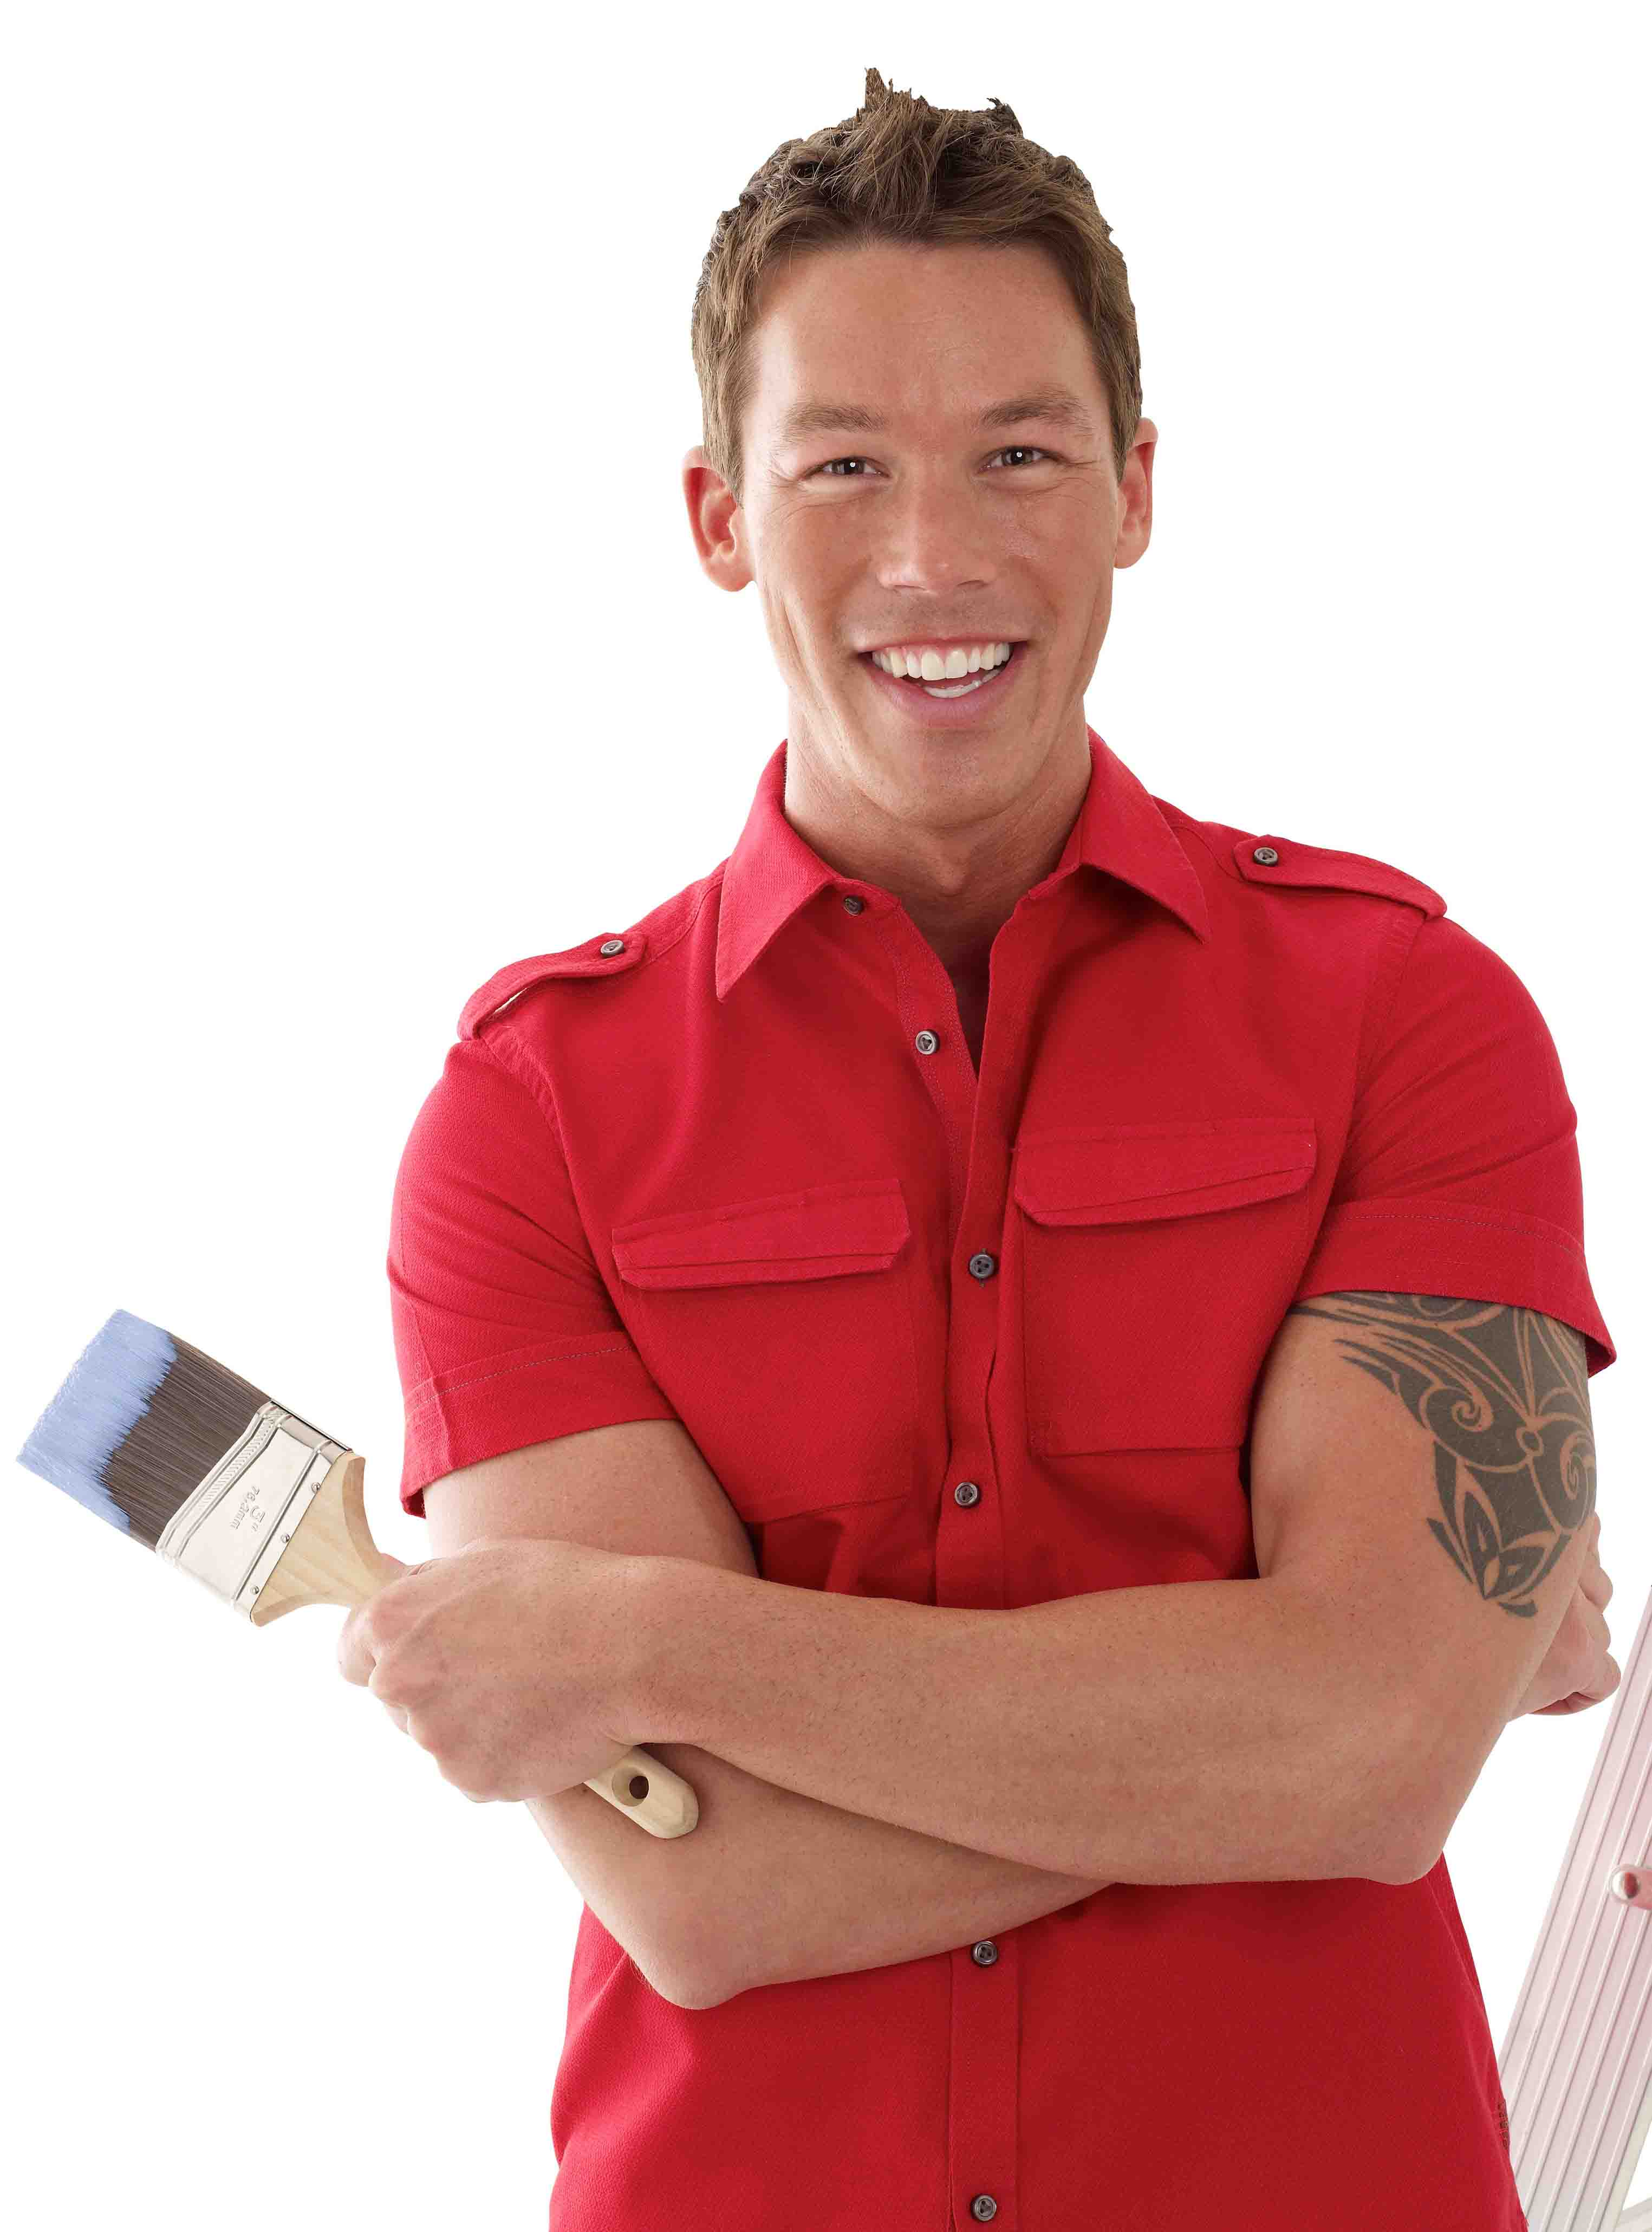 Hgtv design star gets a makeover latf usa for David hgtv designer